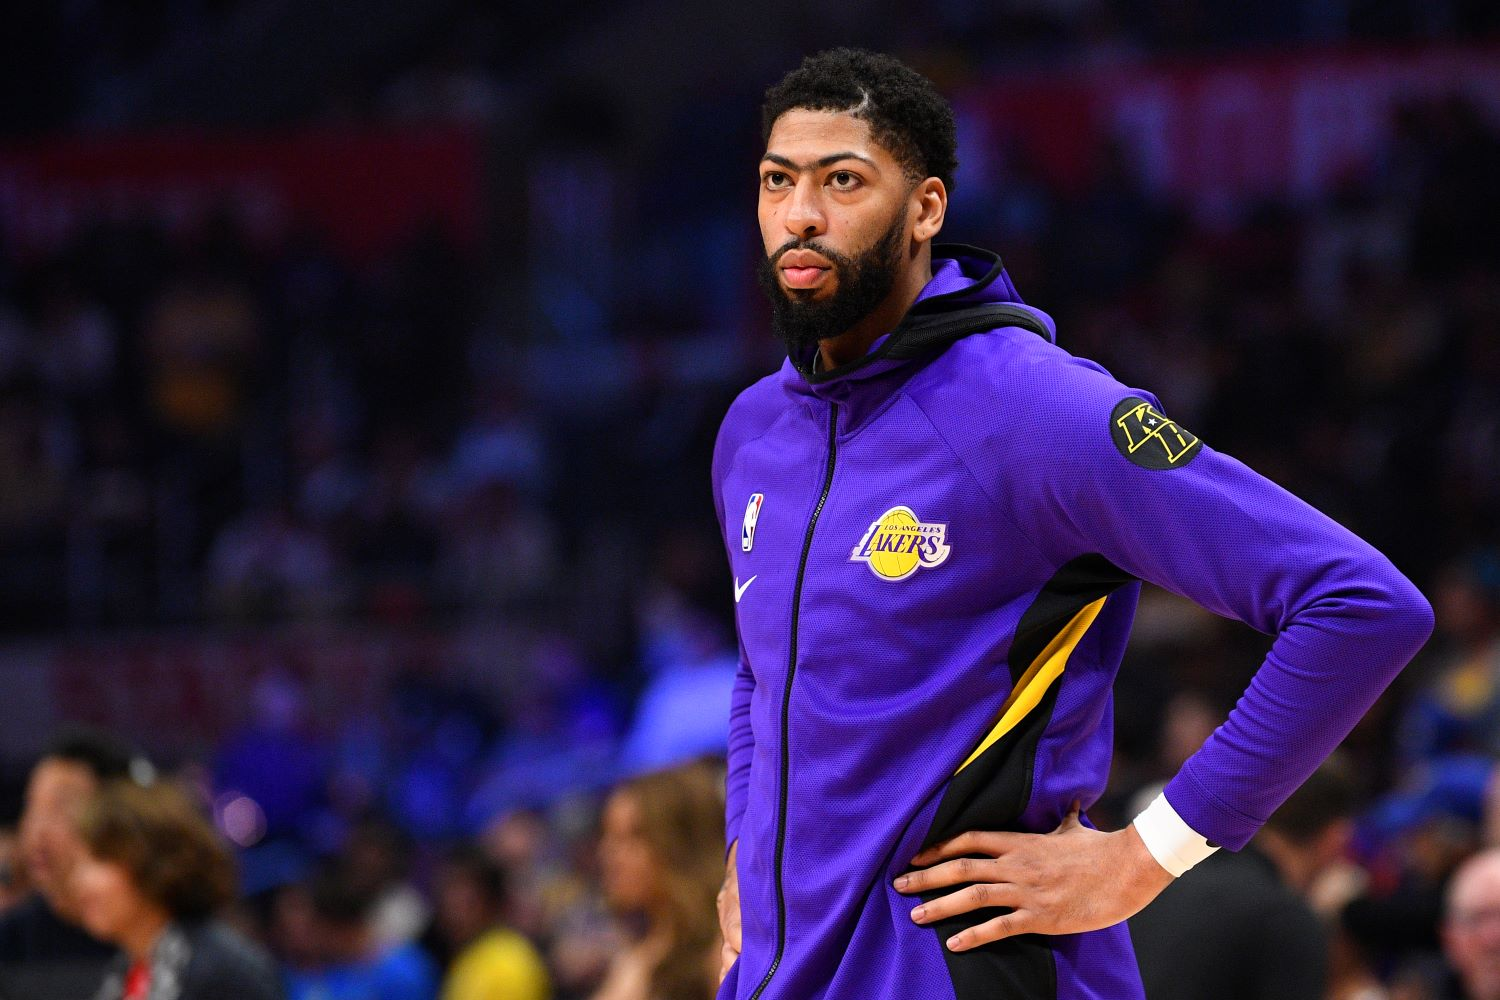 Anthony Davis recently revealed the key reason why he chose to sign a long-term deal with the Lakers.